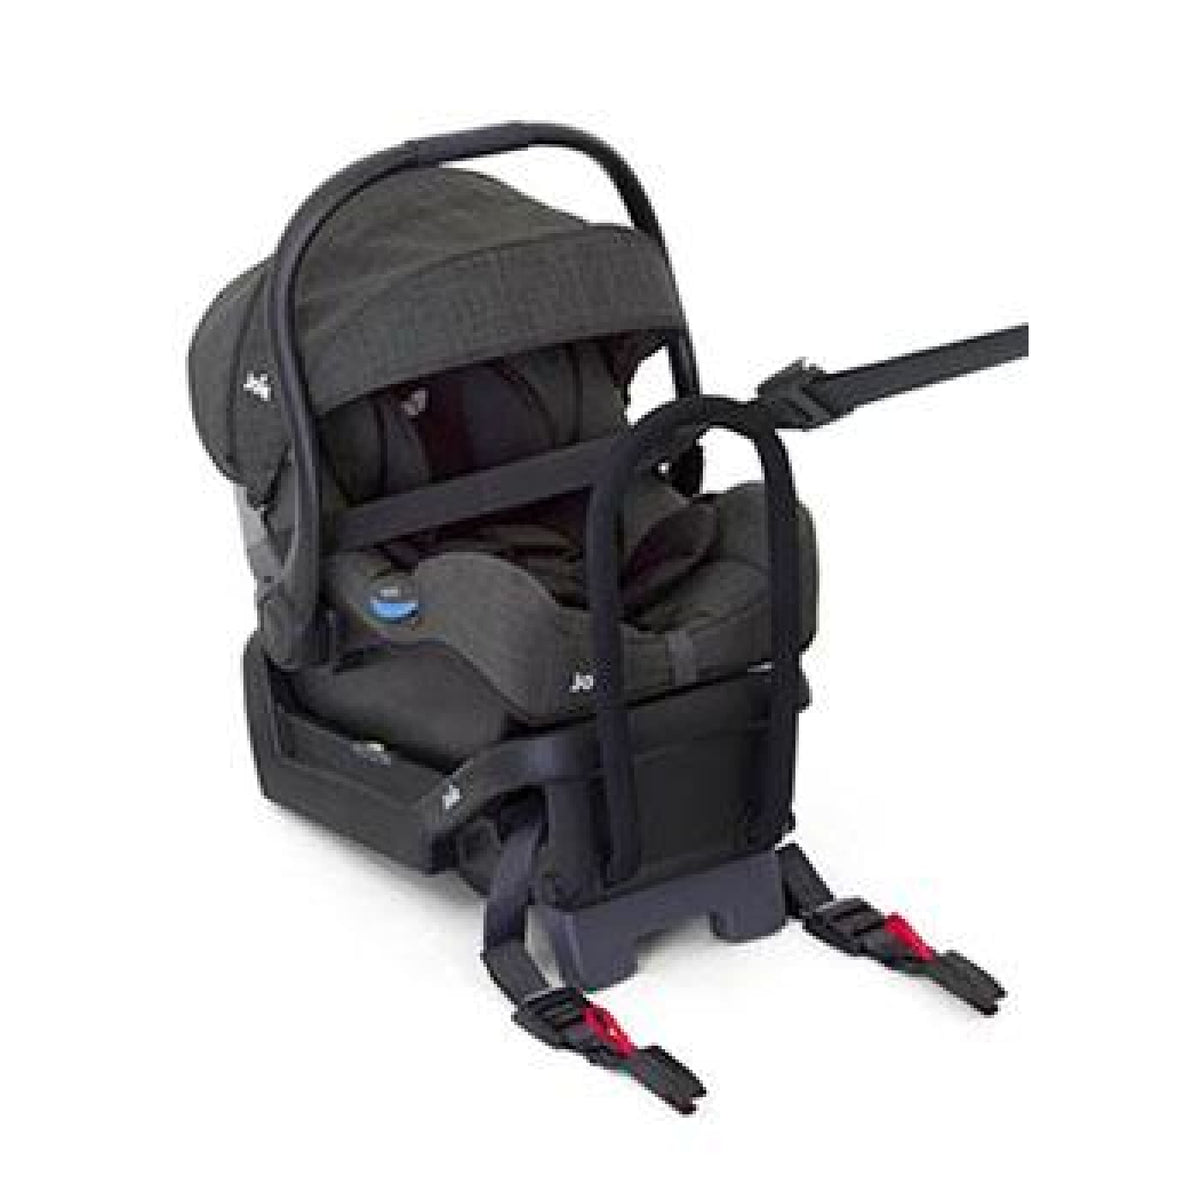 Joie I-Gemm Capsule & Base - Pavement - 0-12 Months / Pavement - CAR SEATS - CAPSULES/CARRIERS ISOFIX (UP TO 12M)